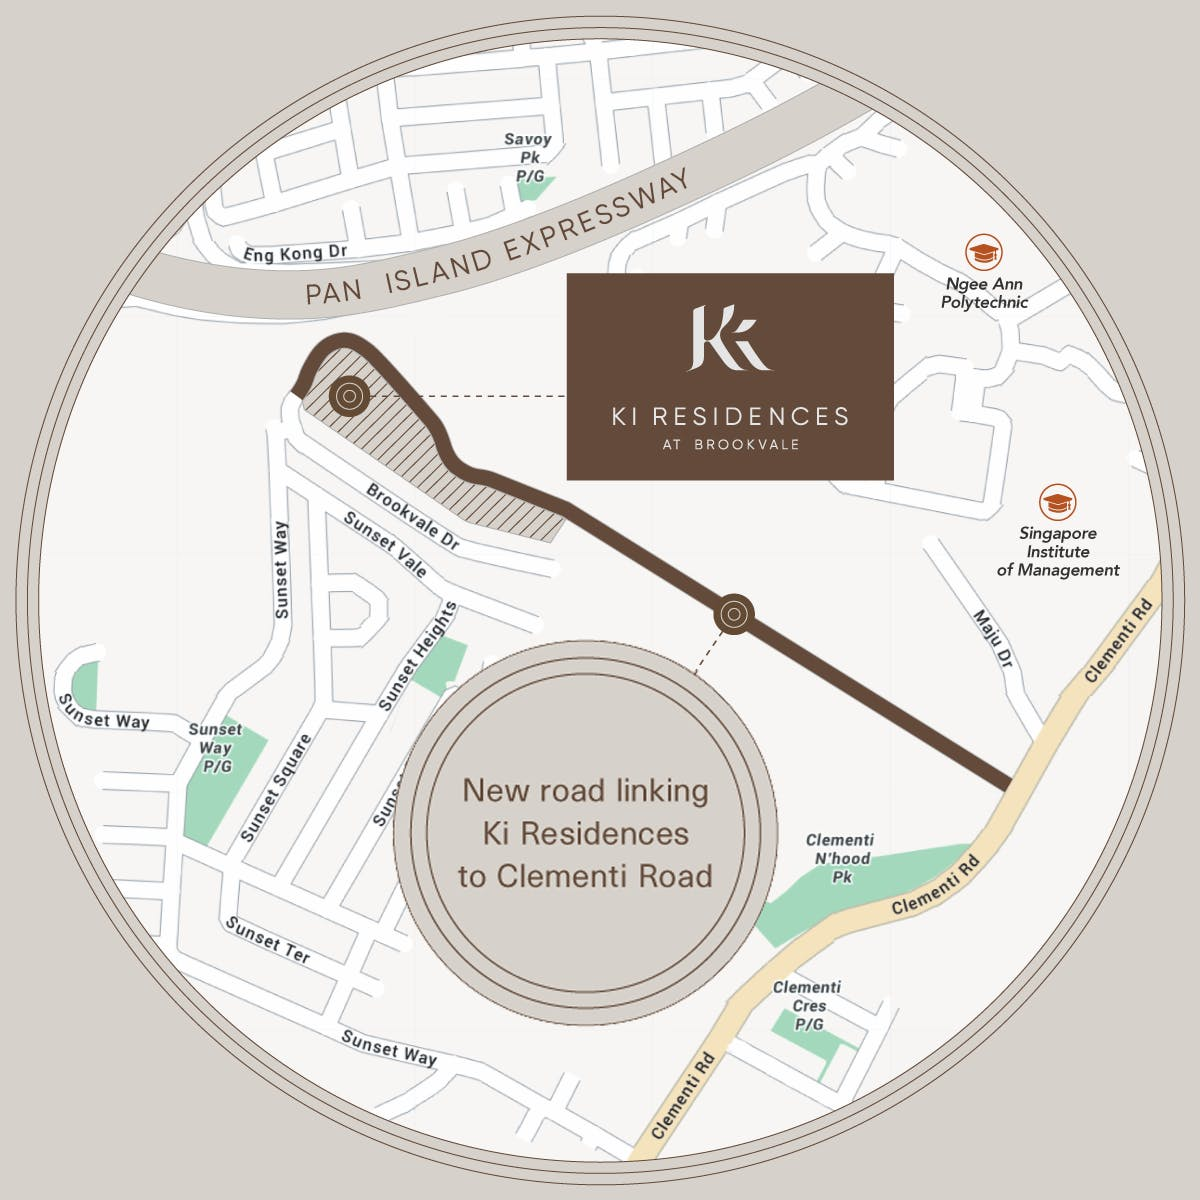 An illustration of Ki Residences at Brookevale and the new road that will link Ki Residences to Clementi Road